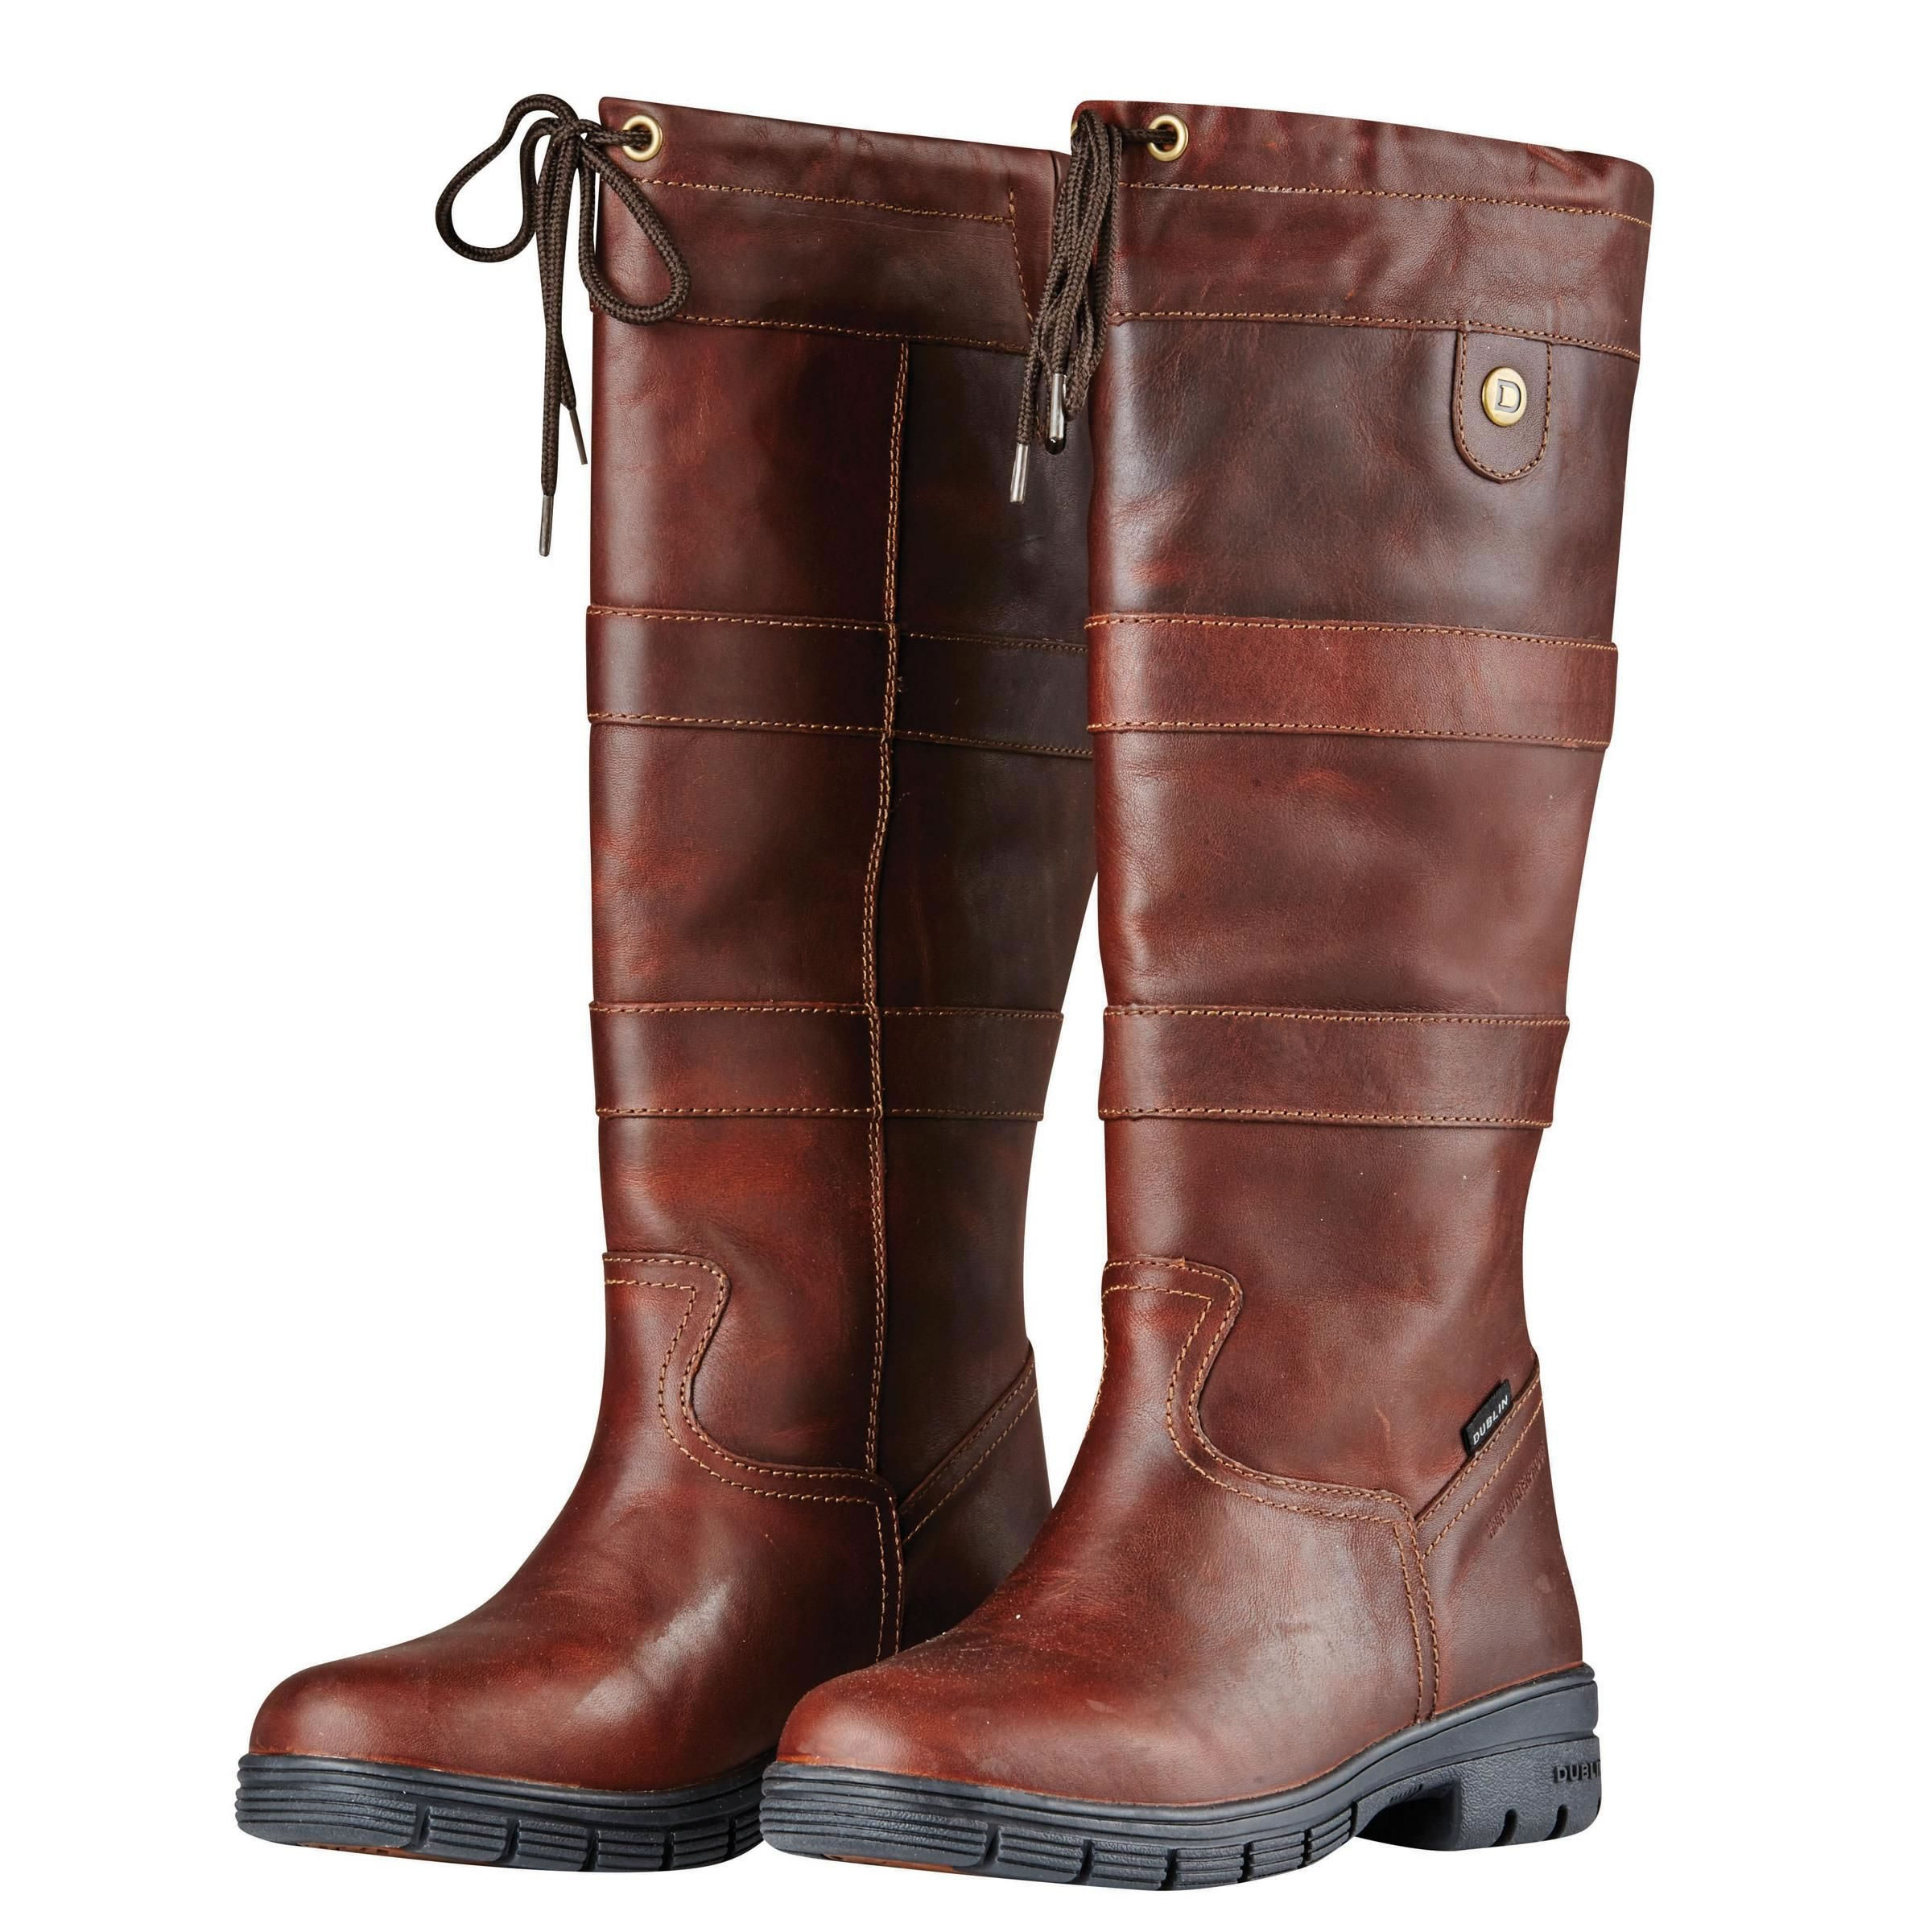 fd7157339b5f Dublin River Grain Boots - Red BrownFrom £169.99 (£141.66 +VAT)